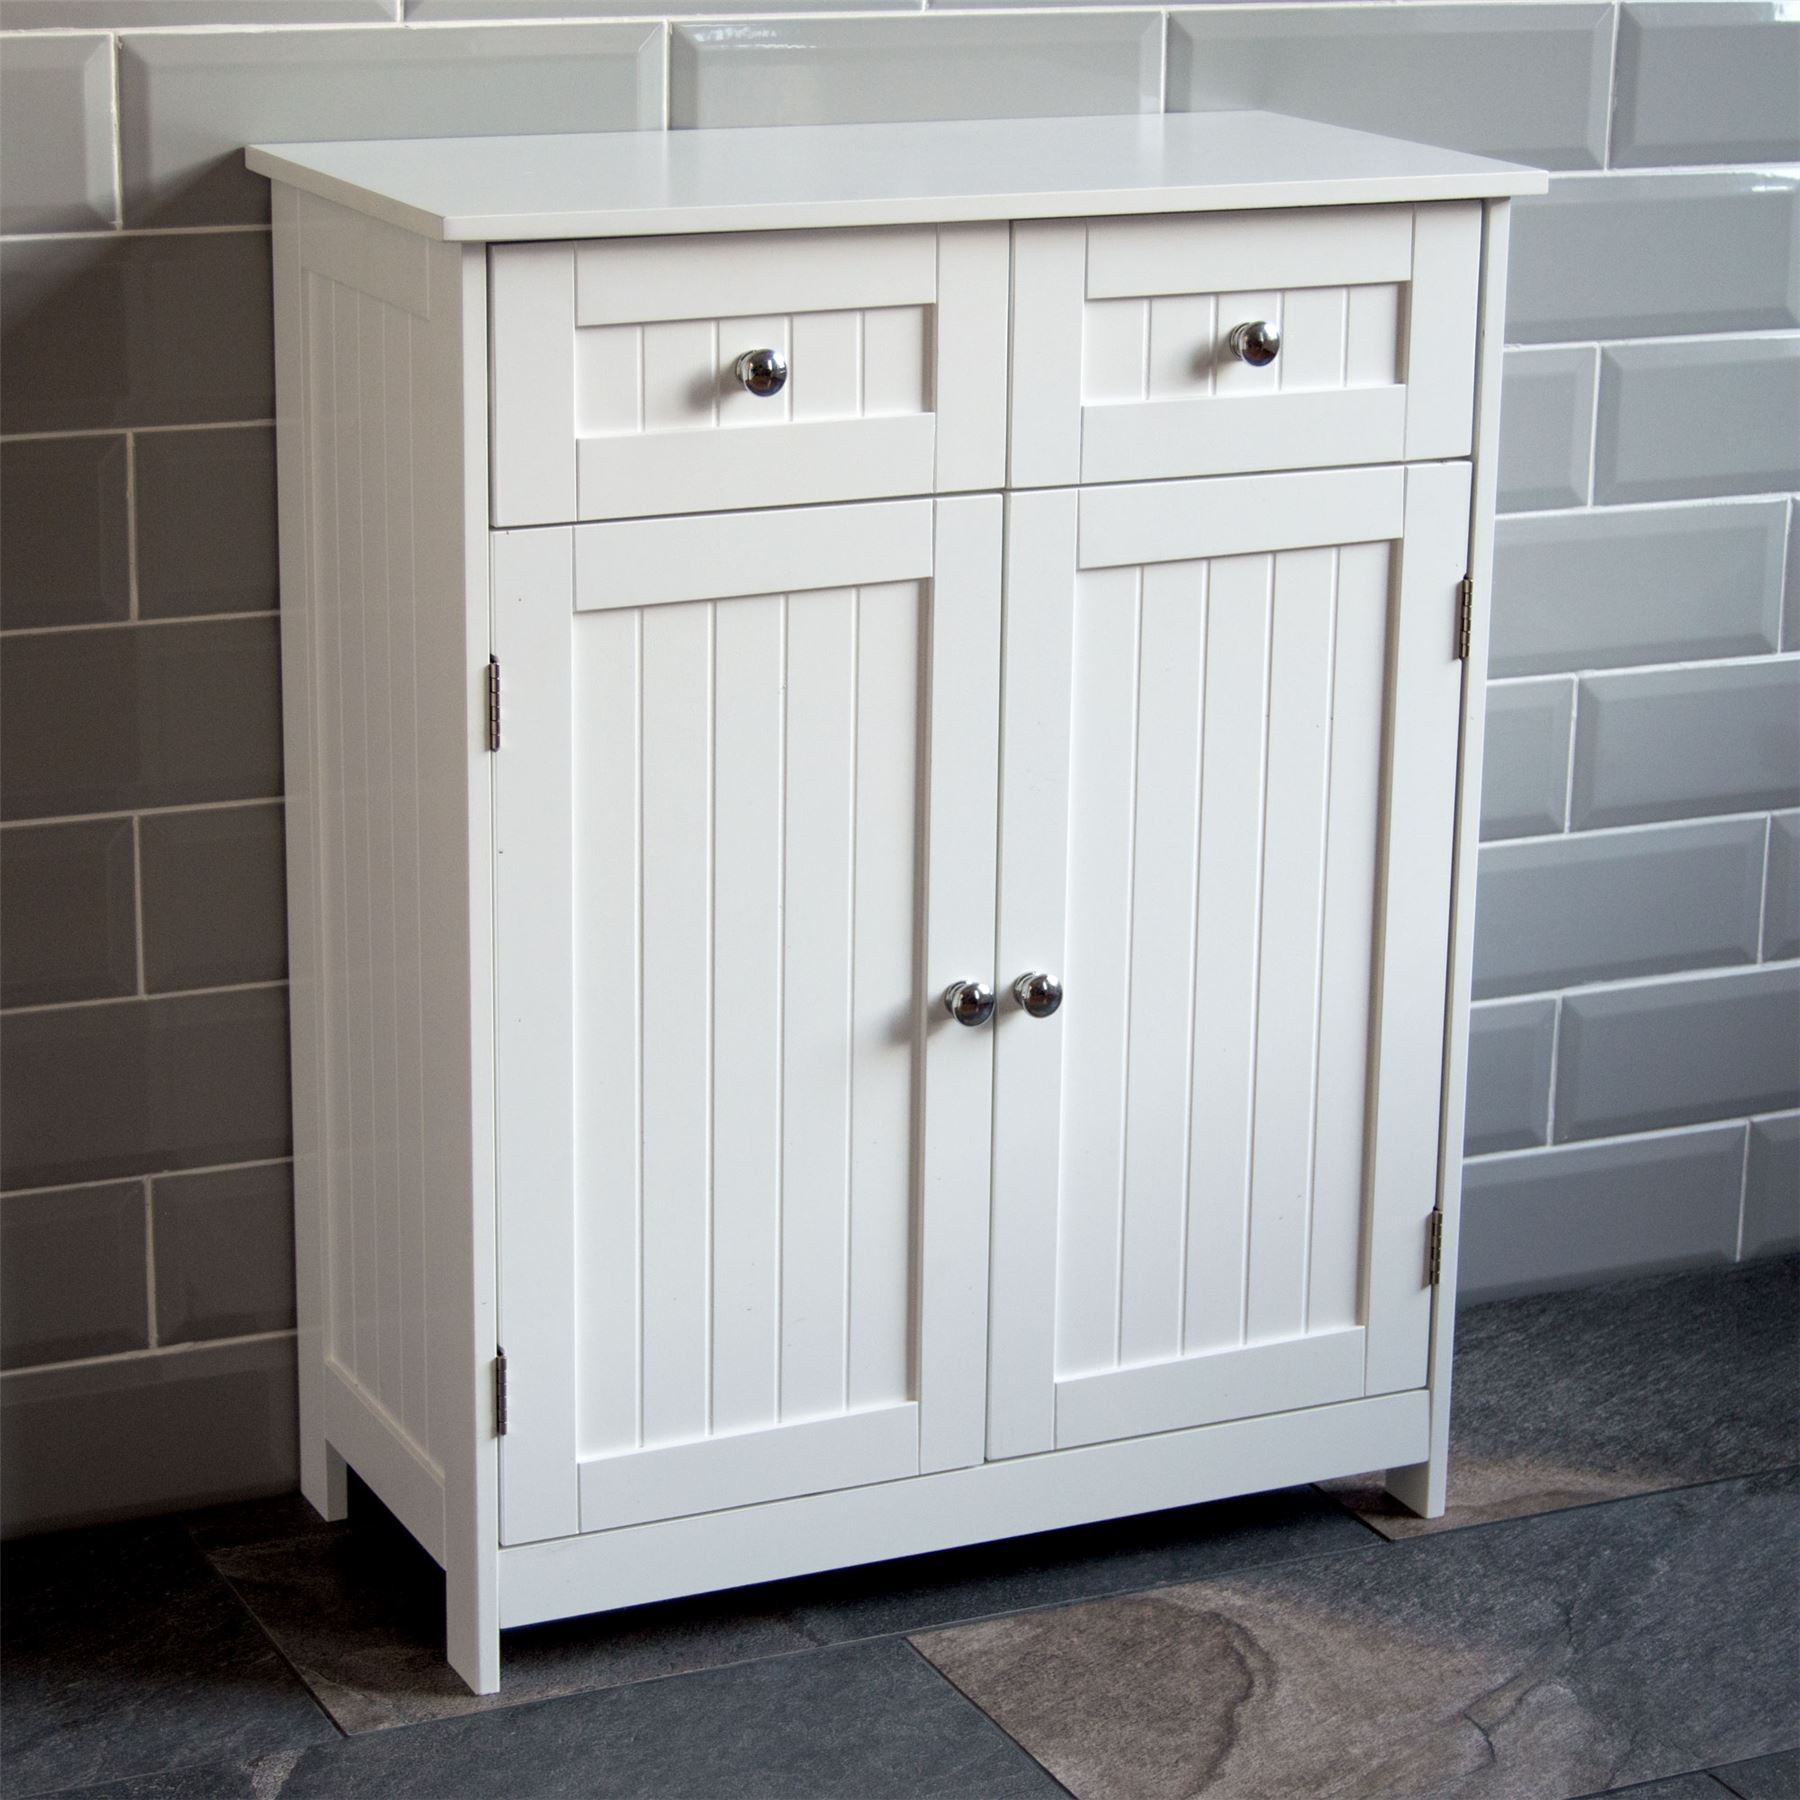 Details About Priano Bathroom Cabinet 2 Drawer 2 Door Storage Cupboard Unit Furniture White within size 1800 X 1800